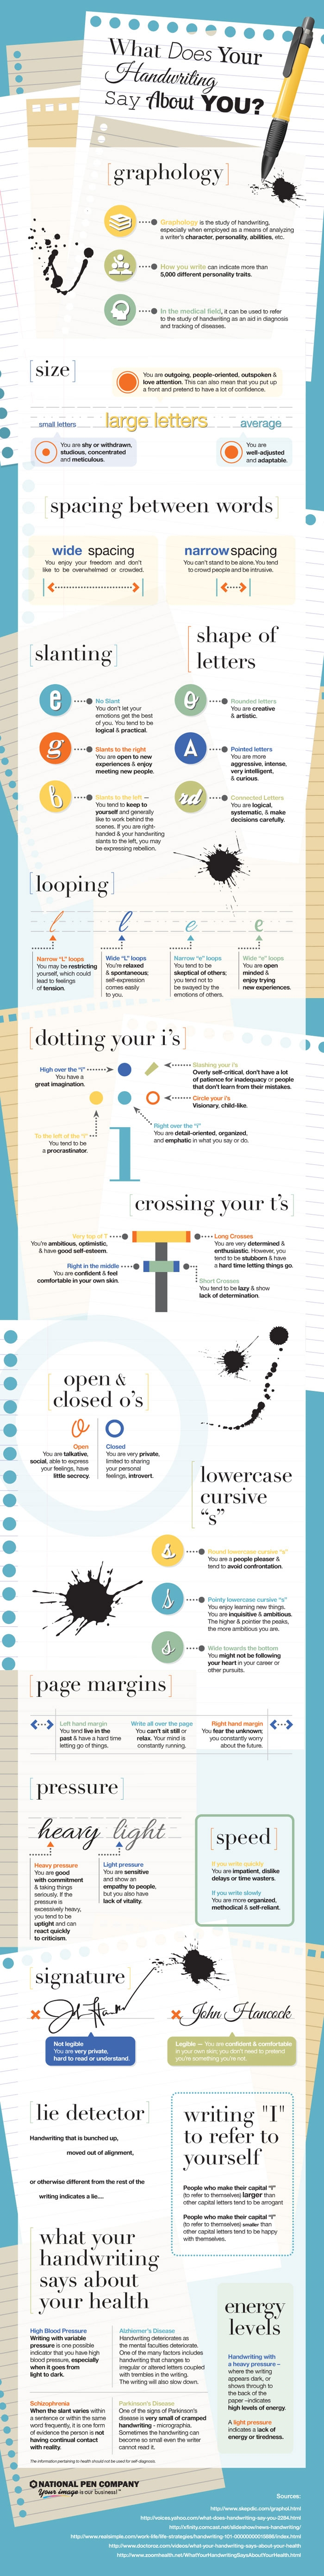 desk_handwriting_infographic_2